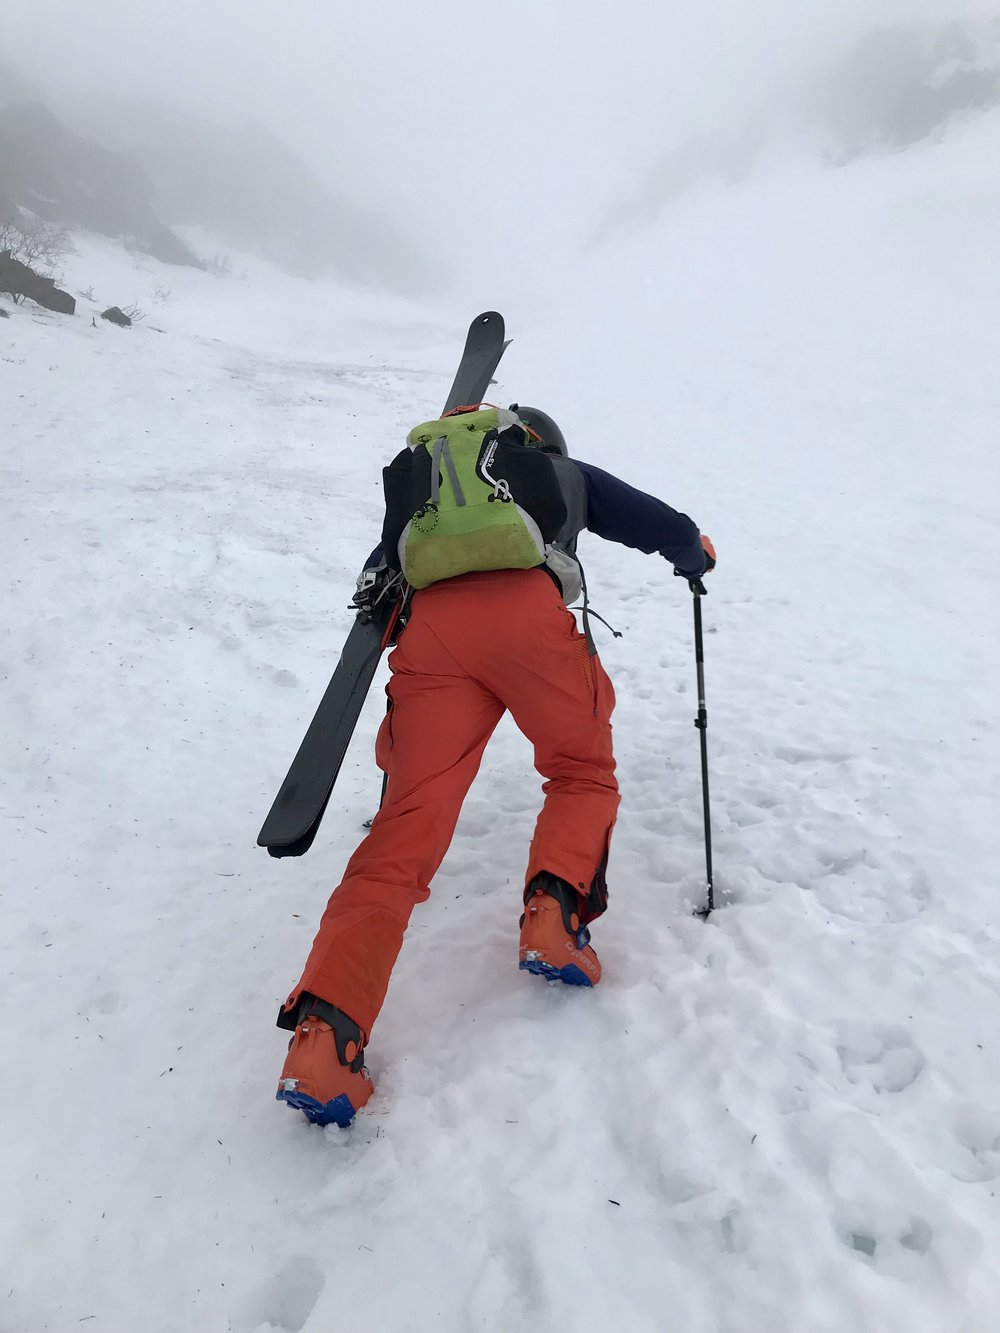 Alex looking very fashionable with his matching boot/pant combo while setting the booter up Left Gully.